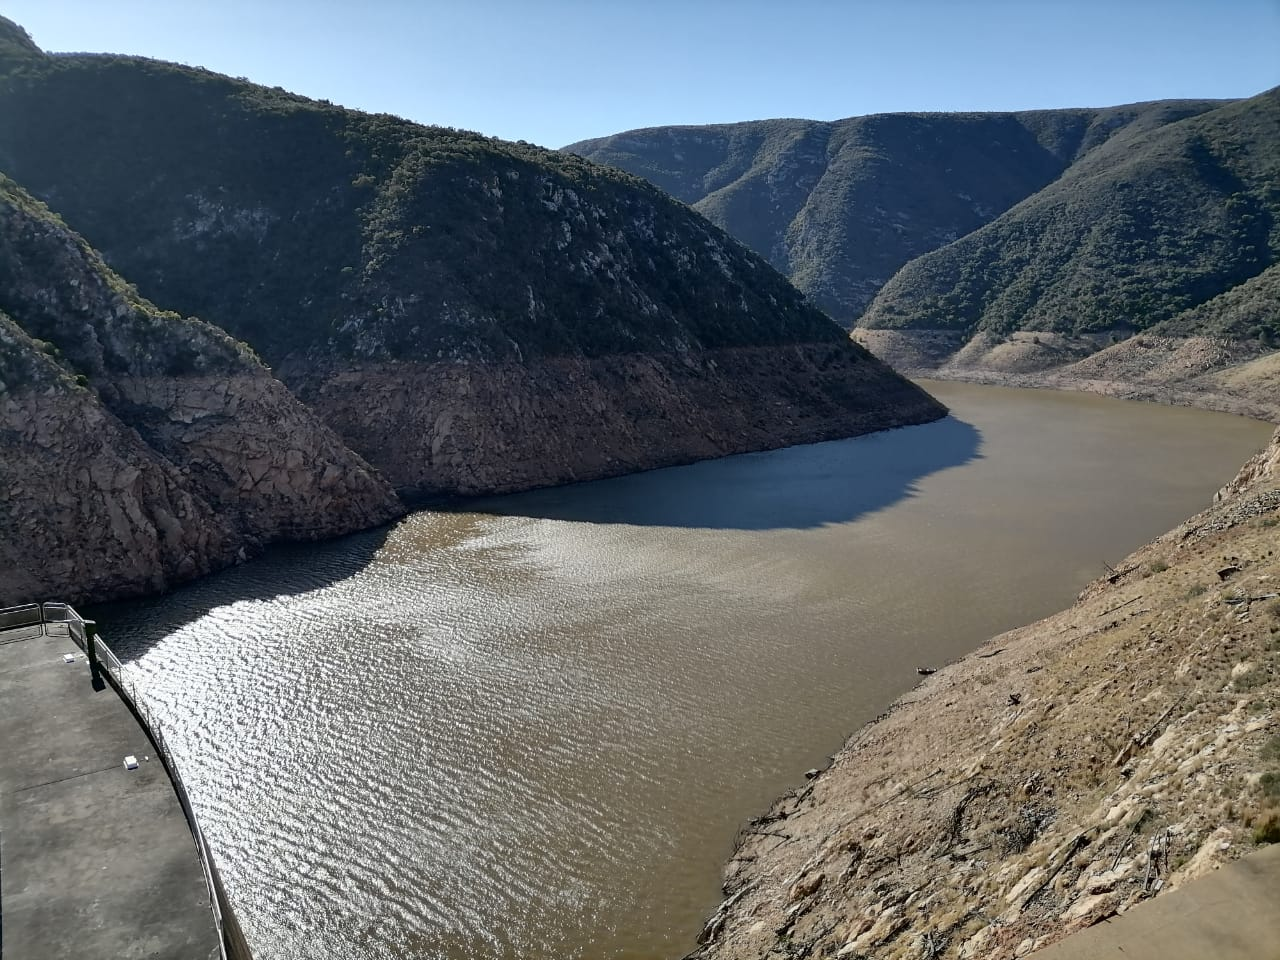 Eastern Cape must now be declared a drought disaster area